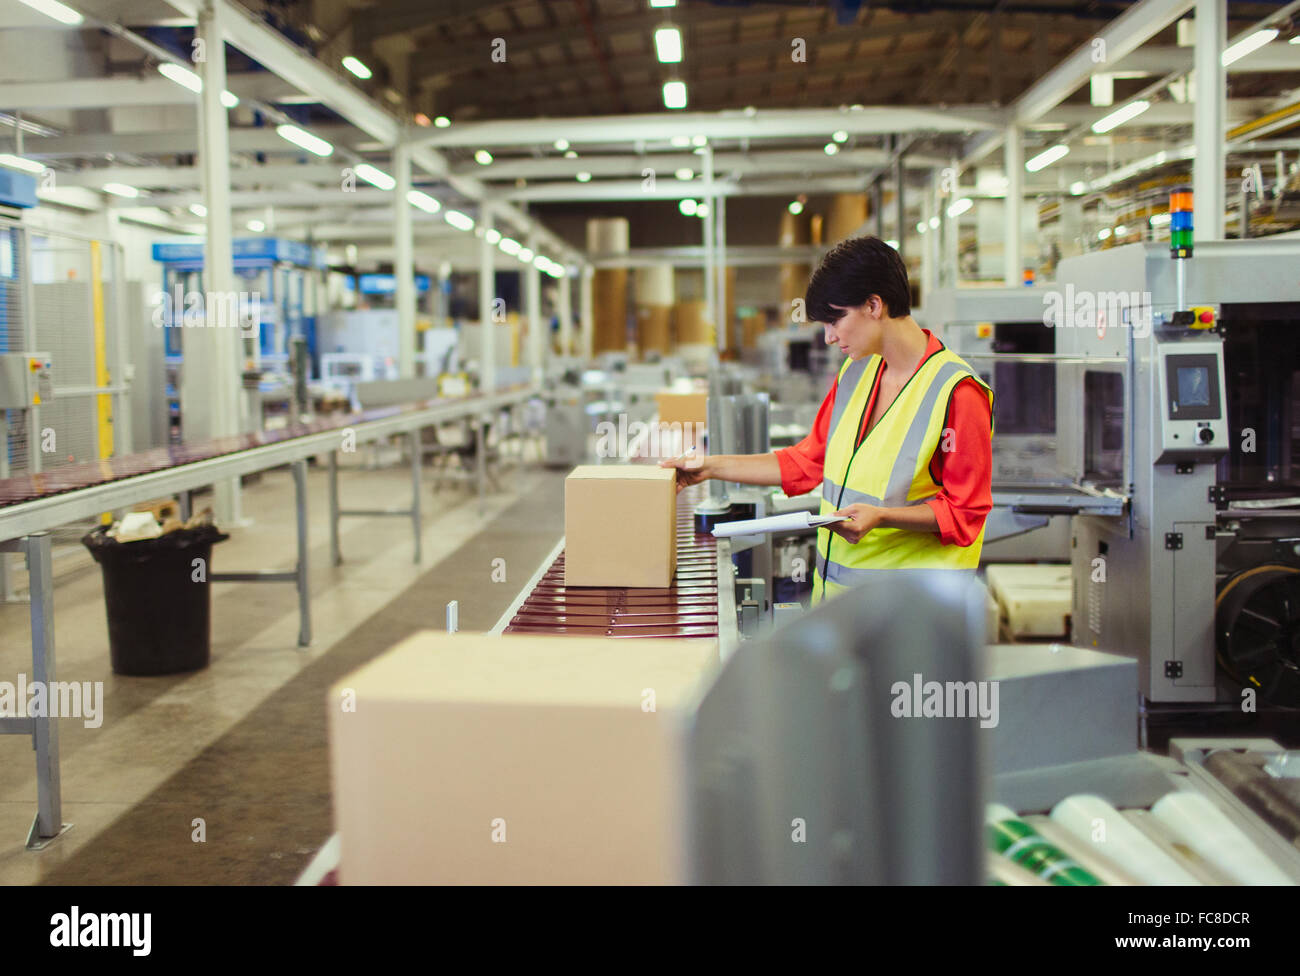 Worker checking cardboard boxes on conveyor belt production line in factory - Stock Image